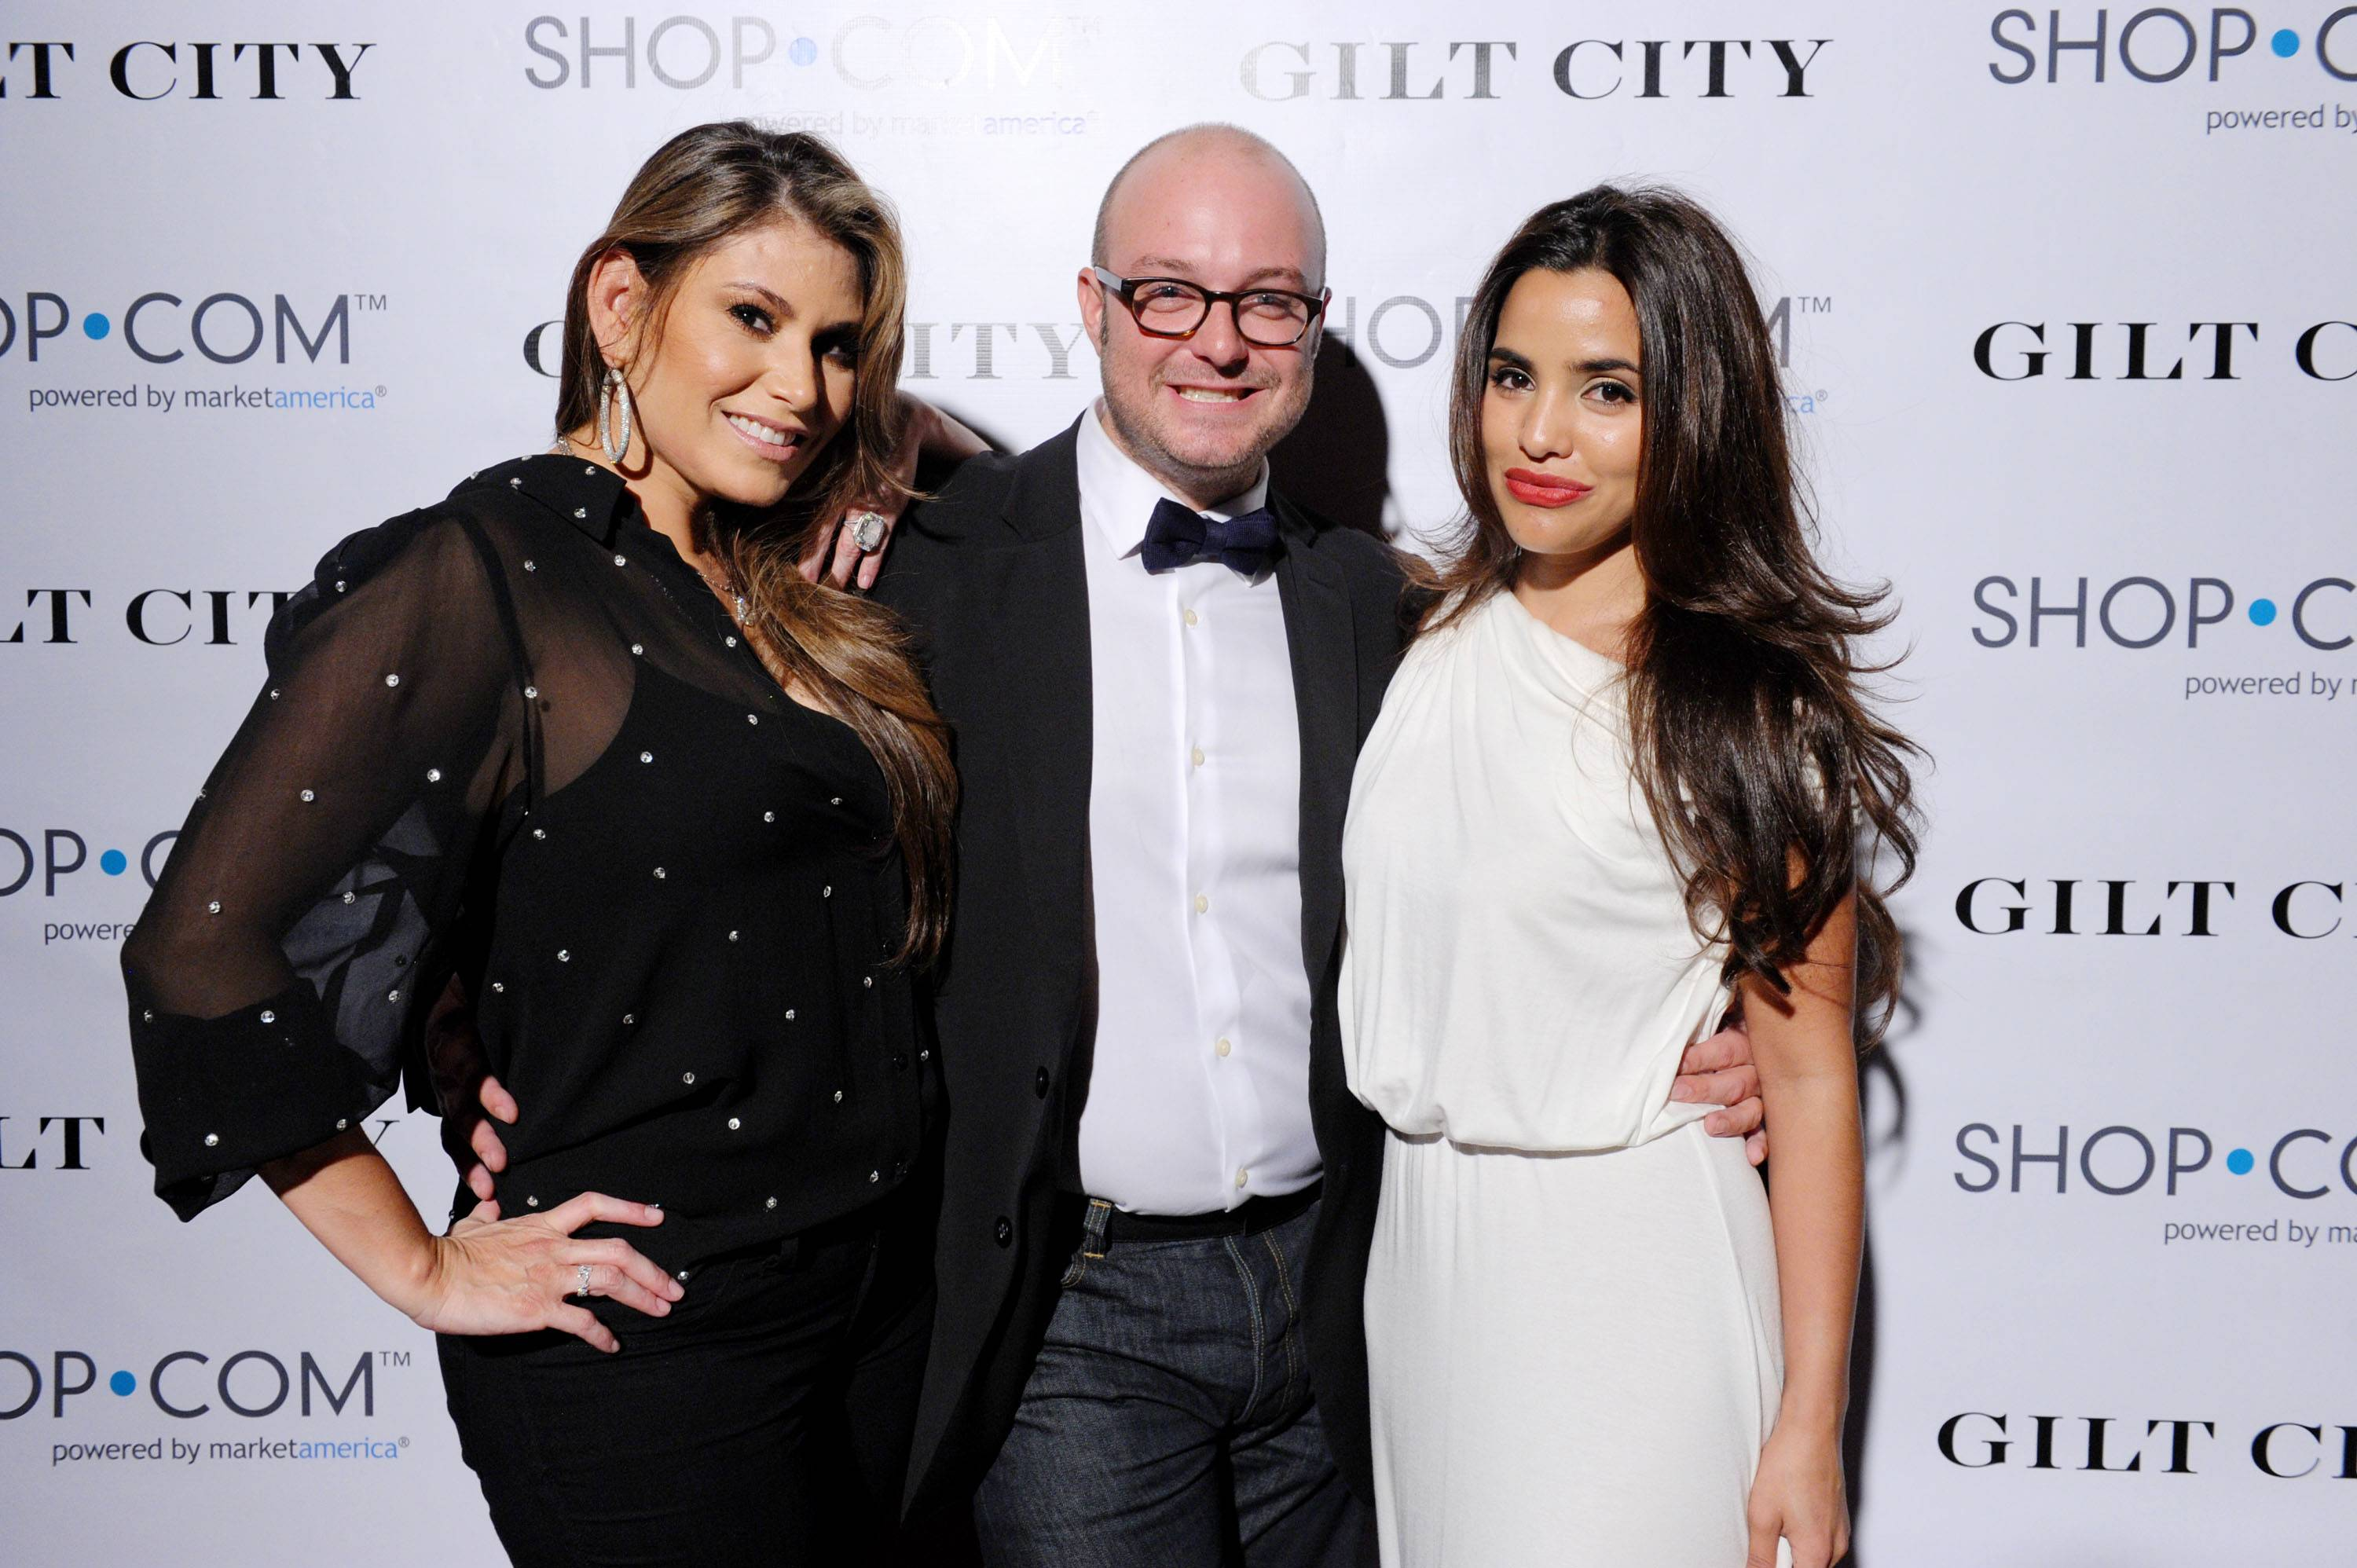 Loren Ridinger and the Gilt City Miami team